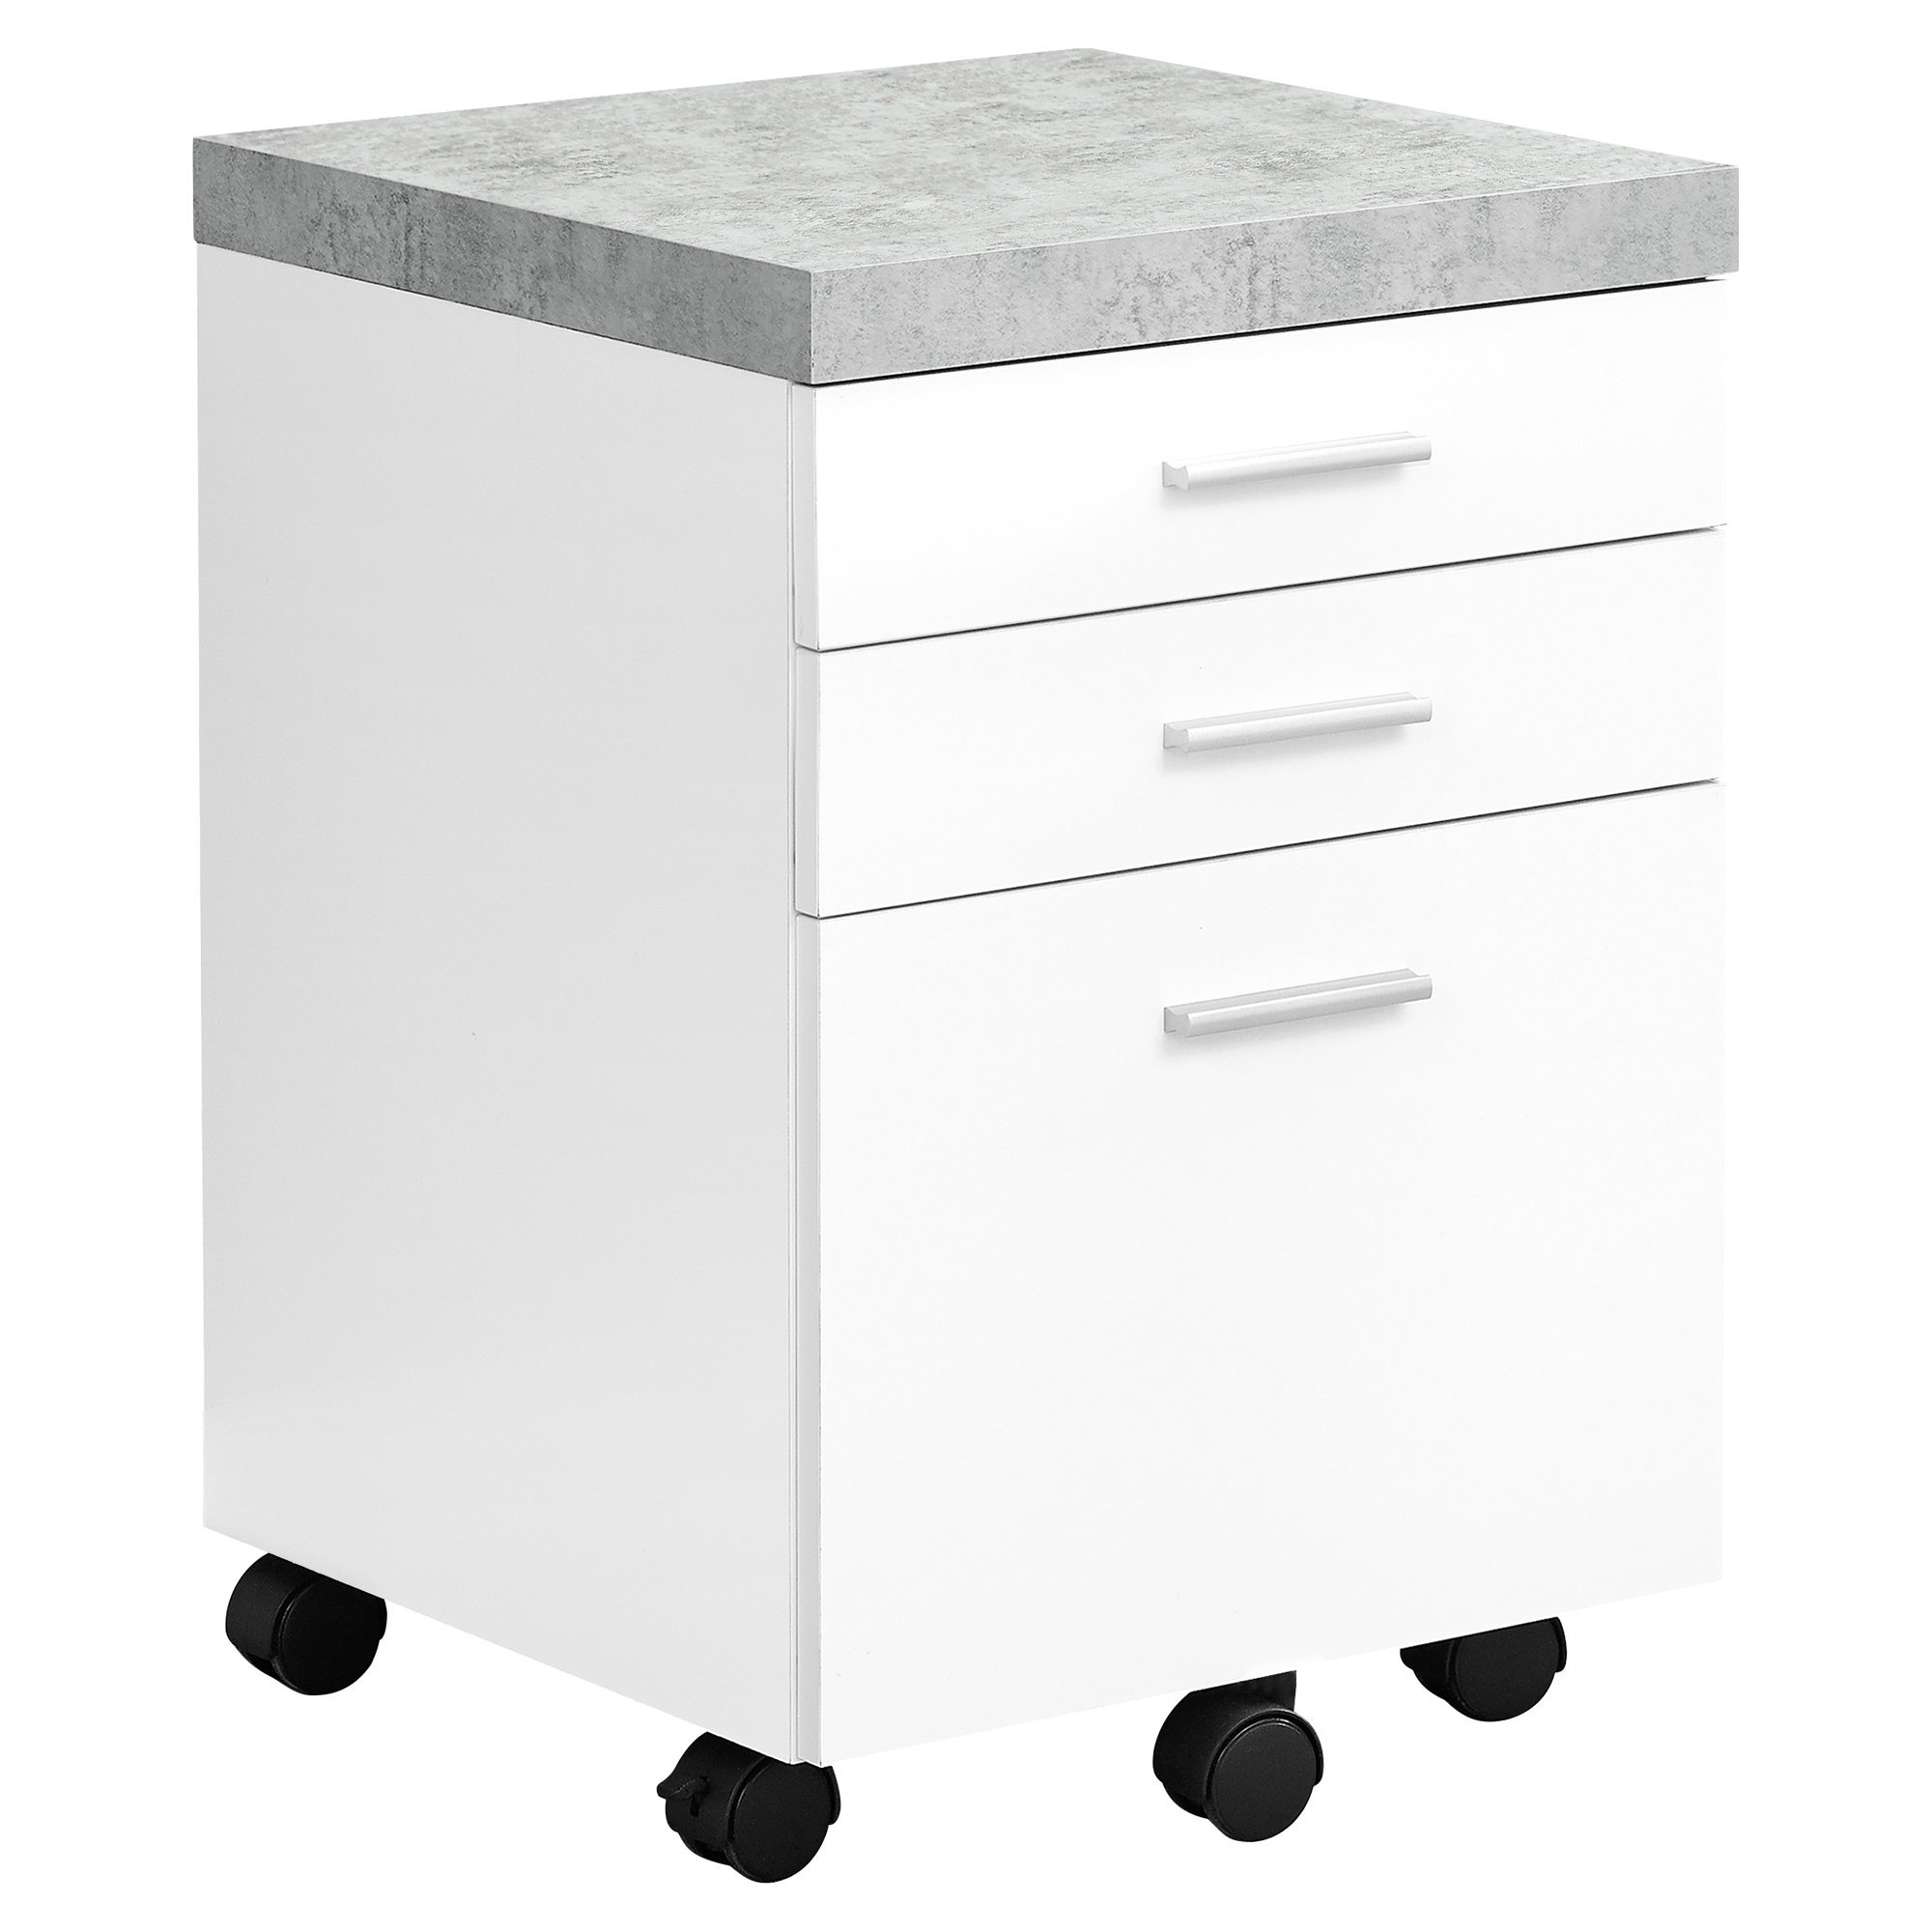 Monarch Specialties I I 7051 Filing Cabinet, White, 18.25'' L x 17.75'' D x 25.25'' H